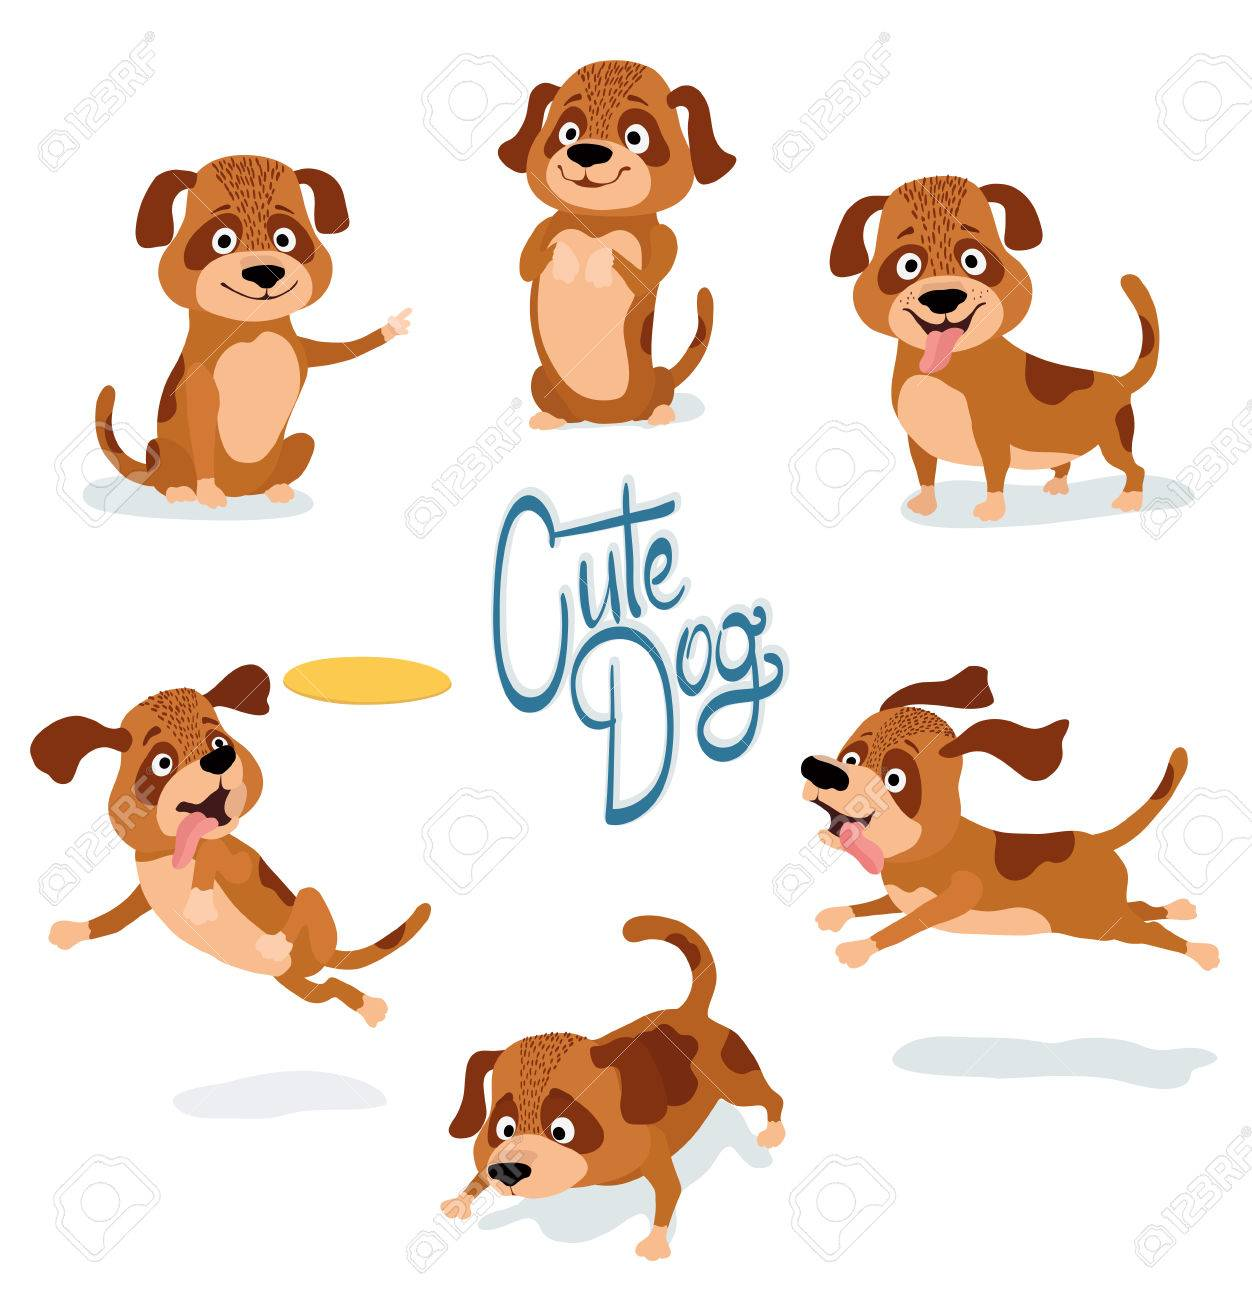 171 Begging Dog Stock Vector Illustration And Royalty Free Begging.